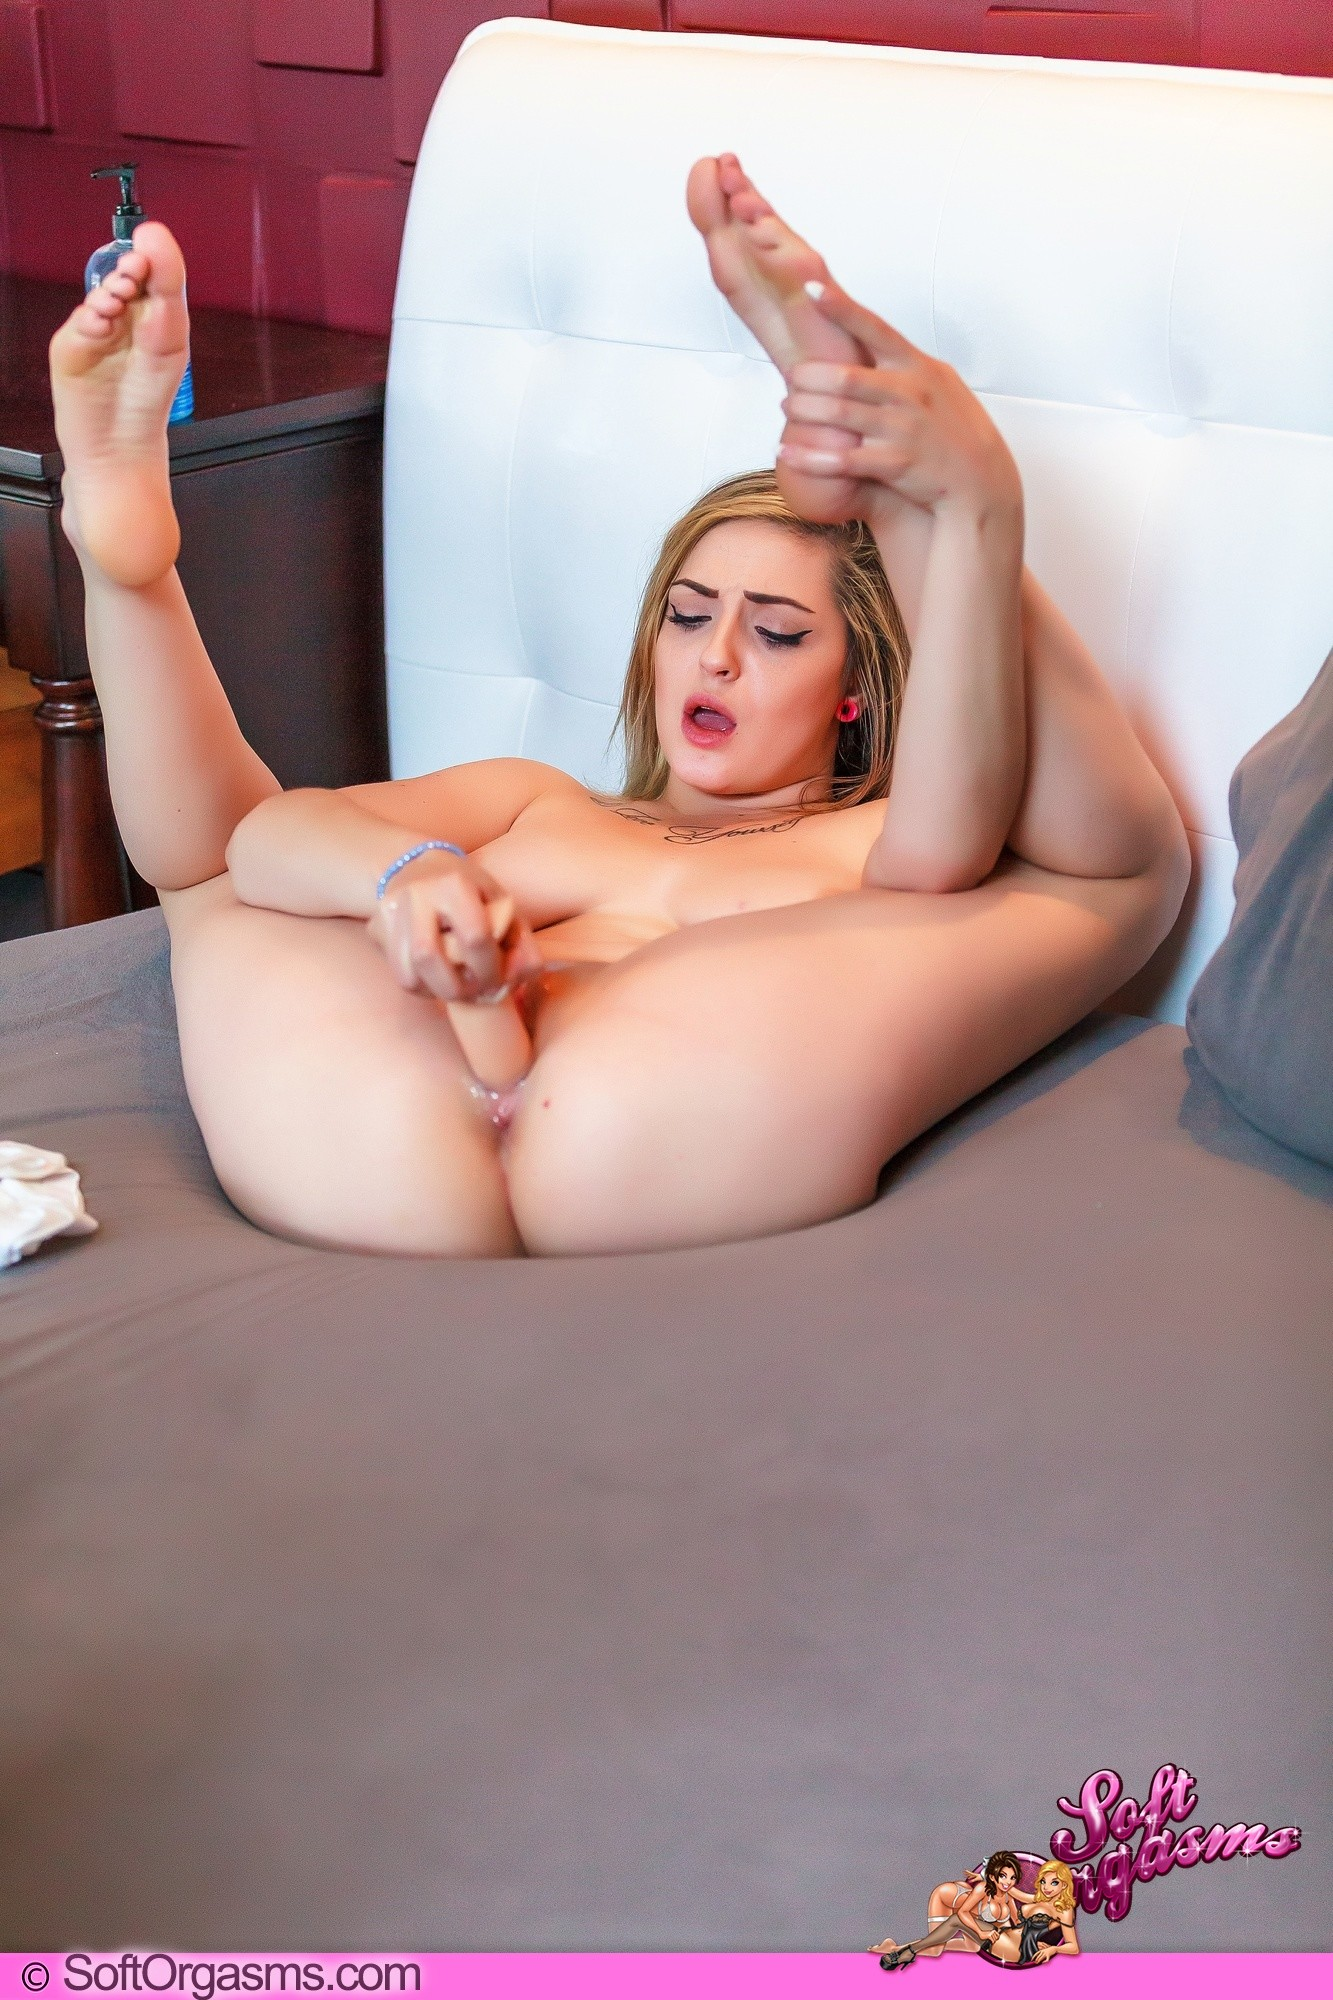 Vibrator in her ass needs you 2 shake google playomb 2 bang - 2 part 8